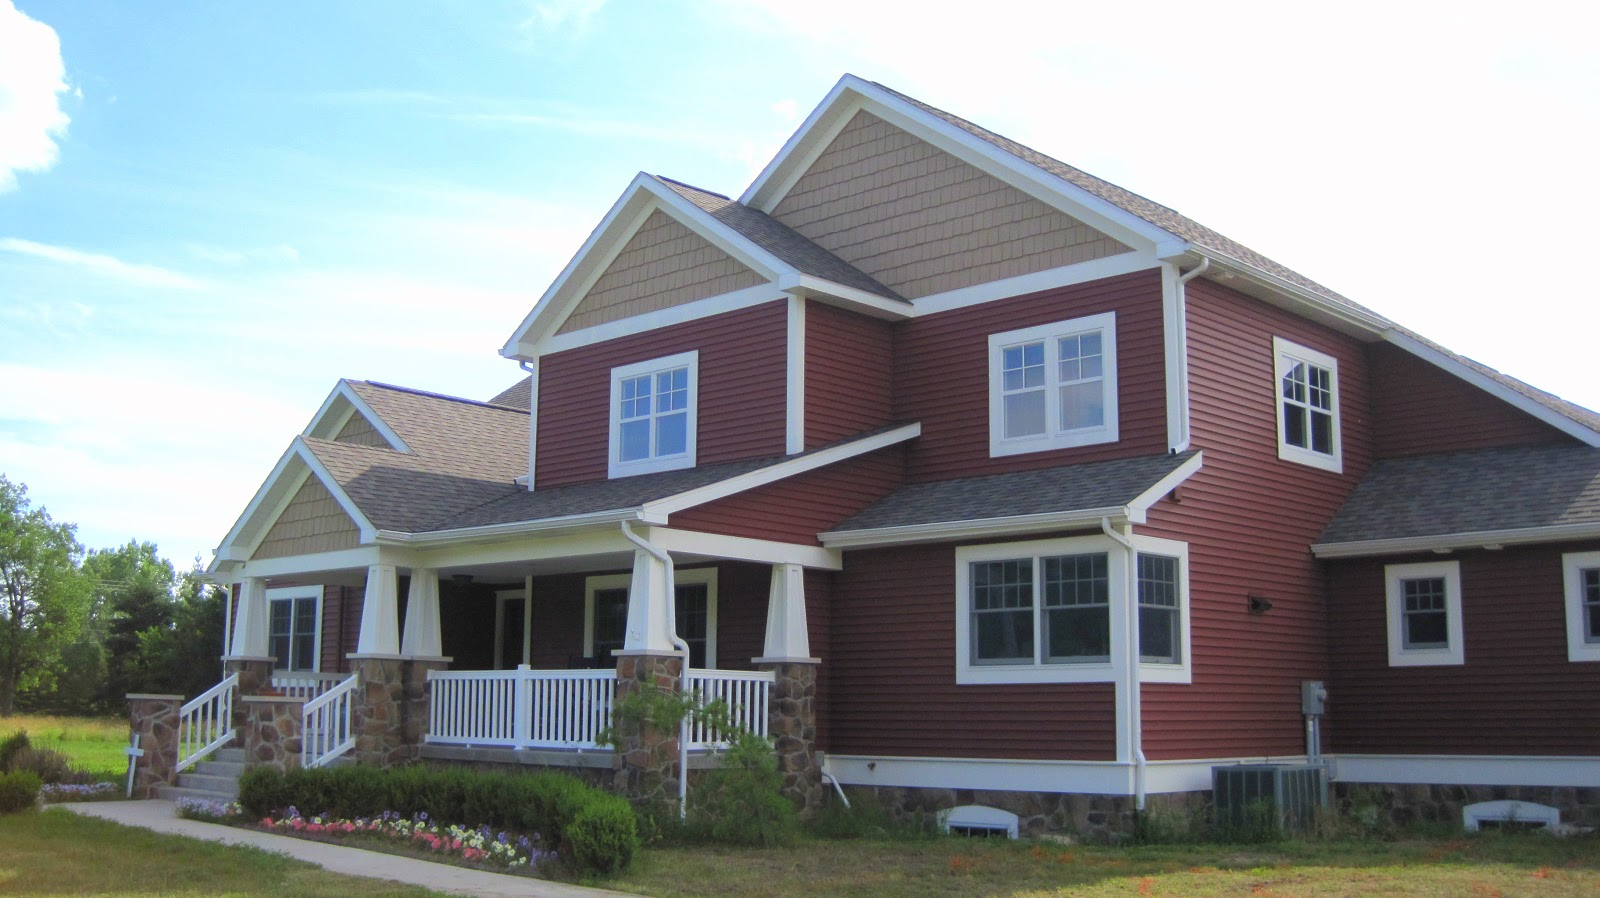 Lp smartside prefinished from lake states in lx pro khaki Brick craftsman house